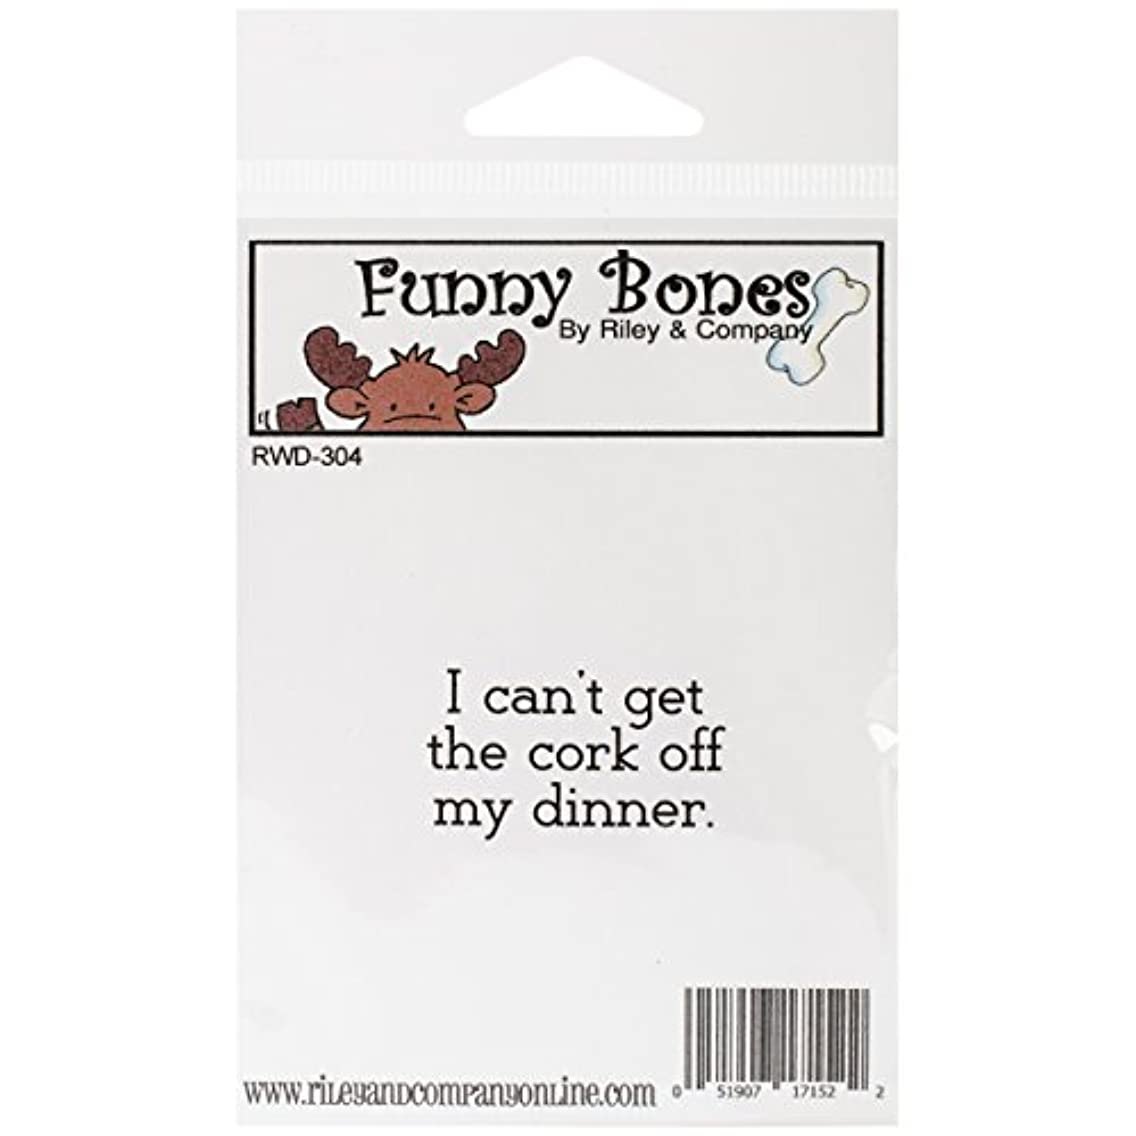 Riley & Company Funny Bones Cling Mounted Stamp, 1.5 by .75-Inch, Cork Off My Dinner